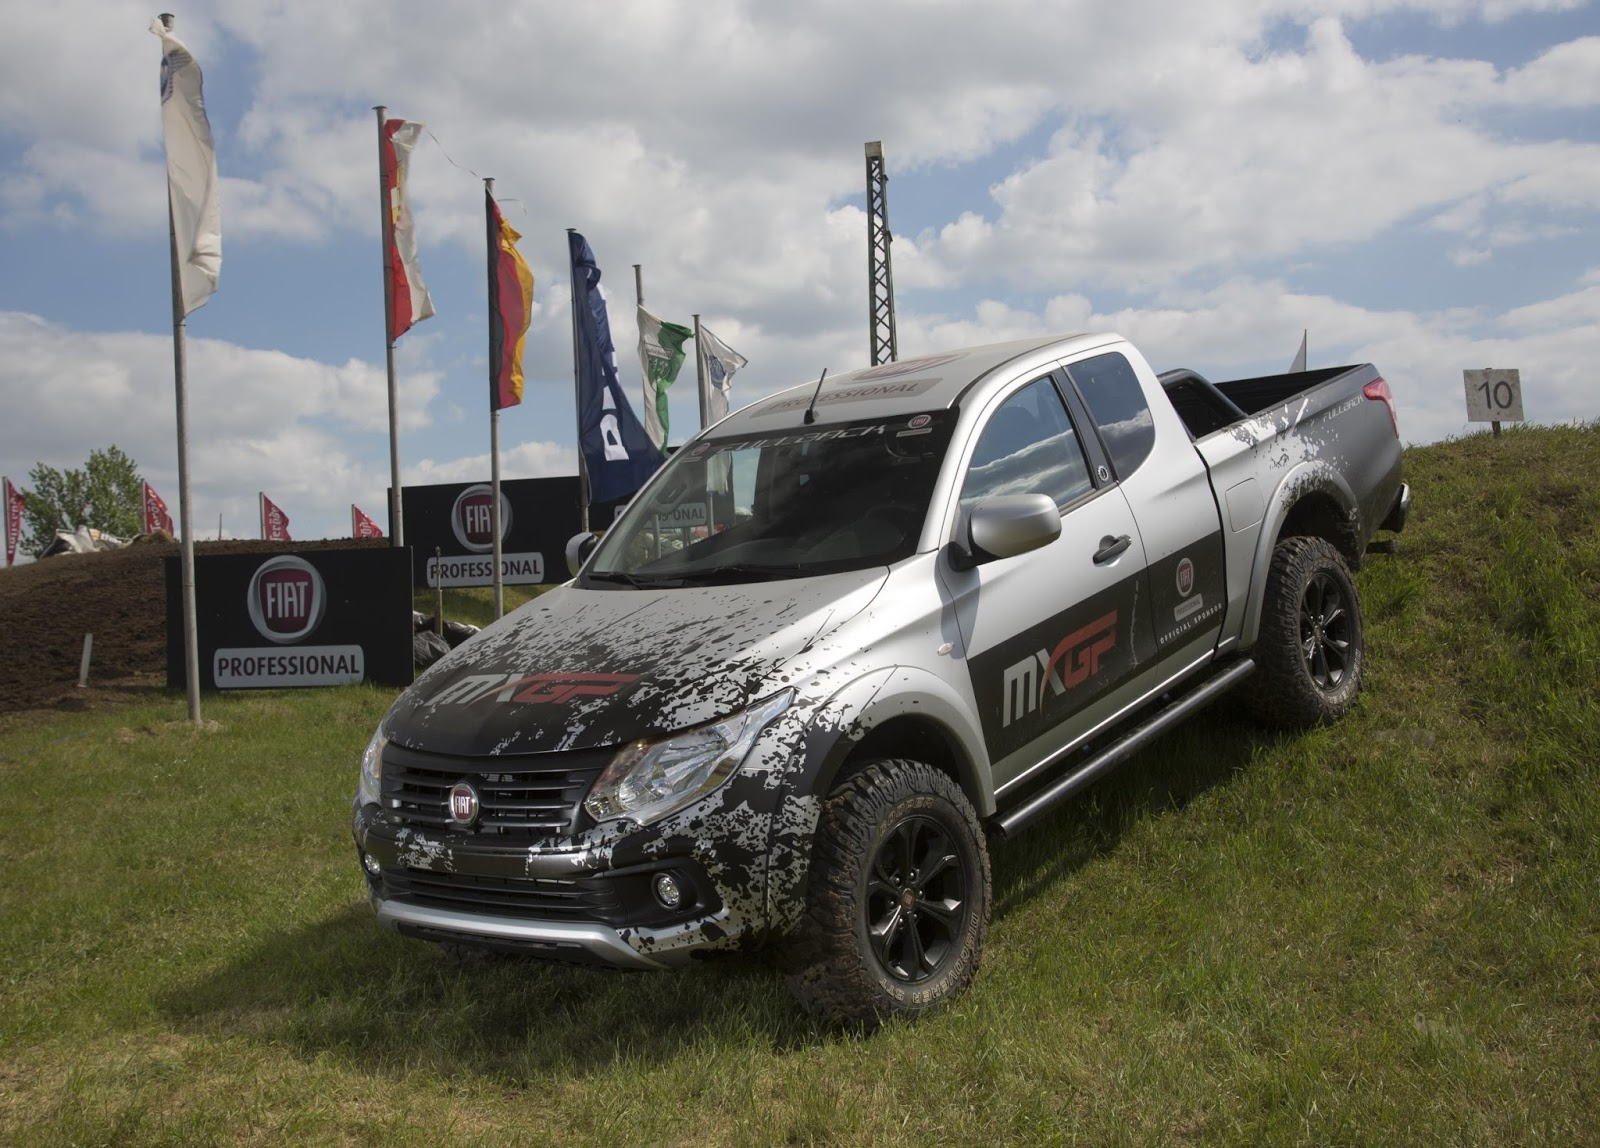 the motoring world the new fiat fullback takes centre stage at the official fim motocross world. Black Bedroom Furniture Sets. Home Design Ideas